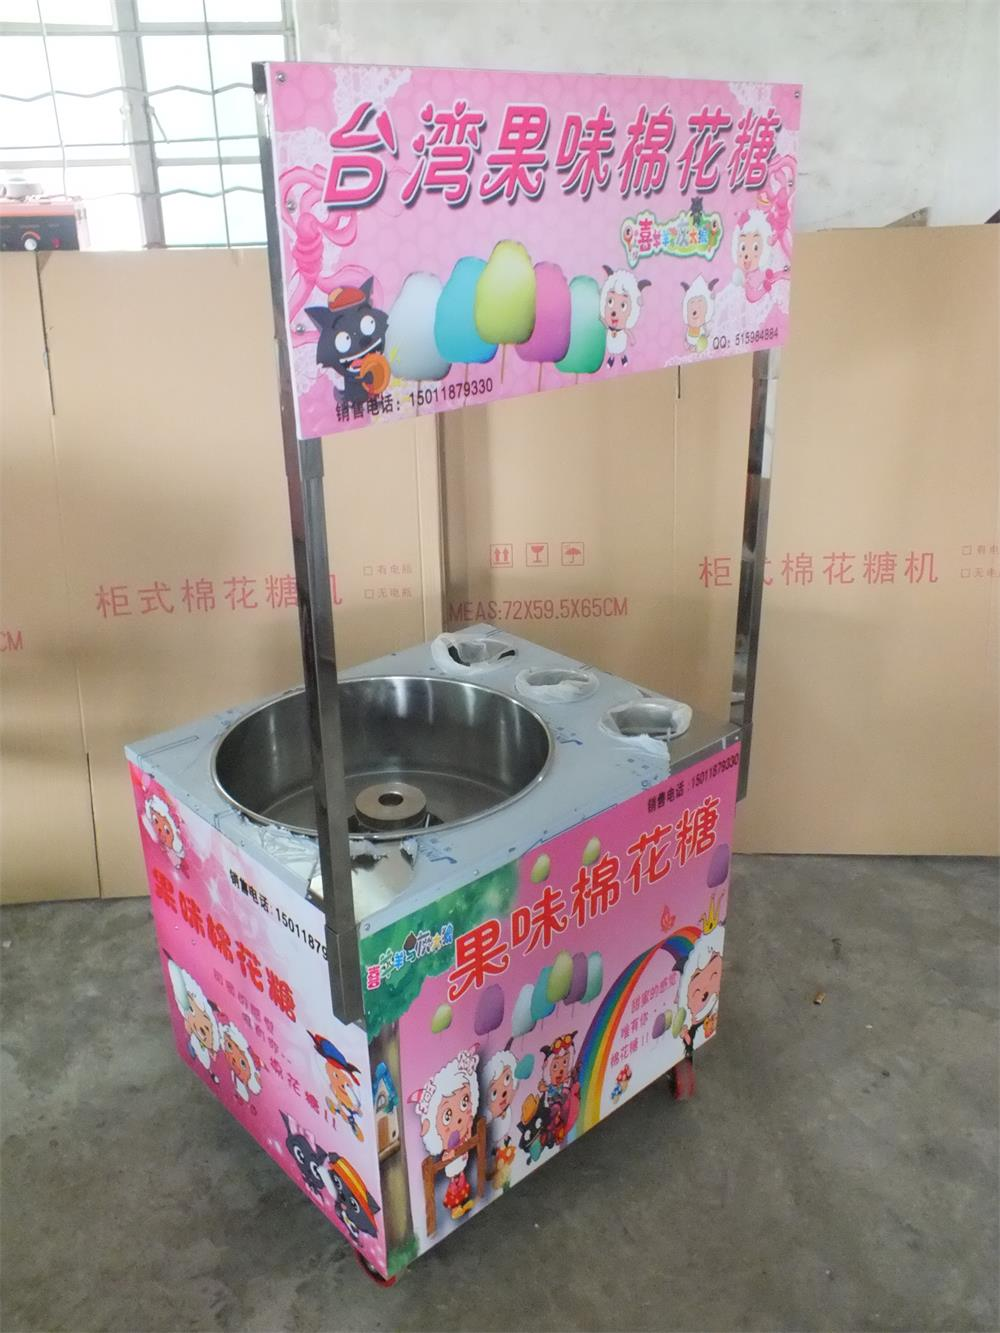 CE approved gas heating stainless steel cart spinning mini cotton candy machine many flavour professional cotton candy machine many flavour professional cotton candy machine cotton candy machine price low price cotton candy machine